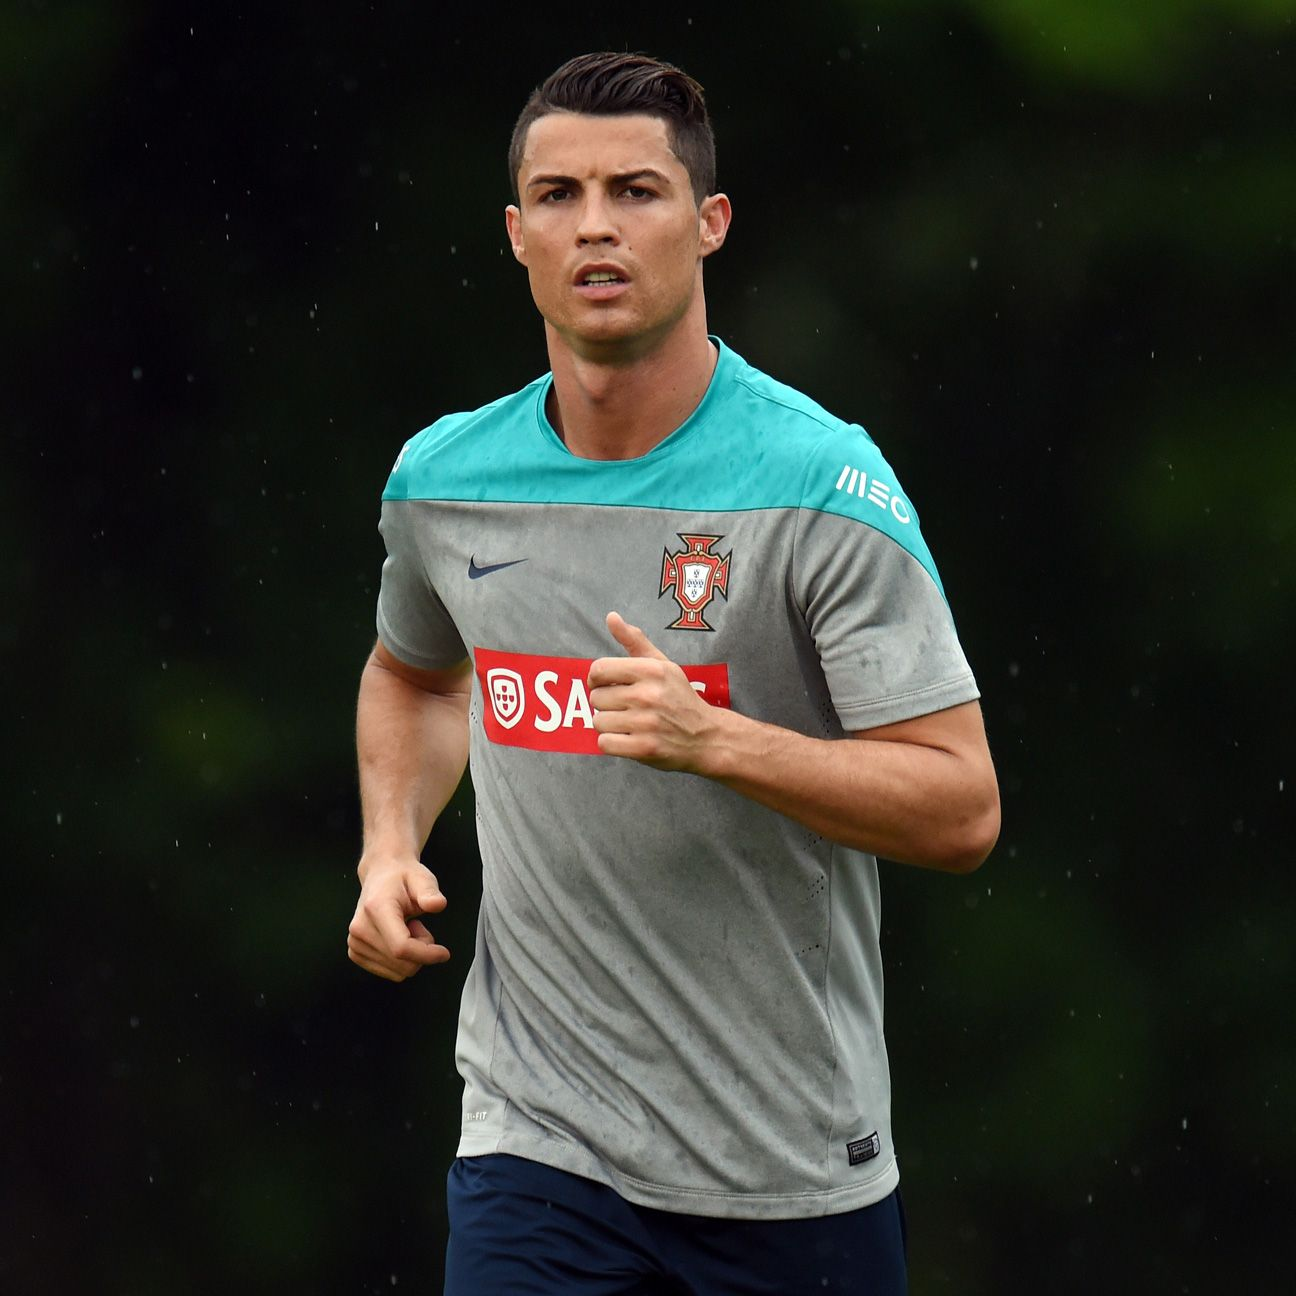 Cristiano Ronaldo scored four times for Portugal at the 2018 World Cup.